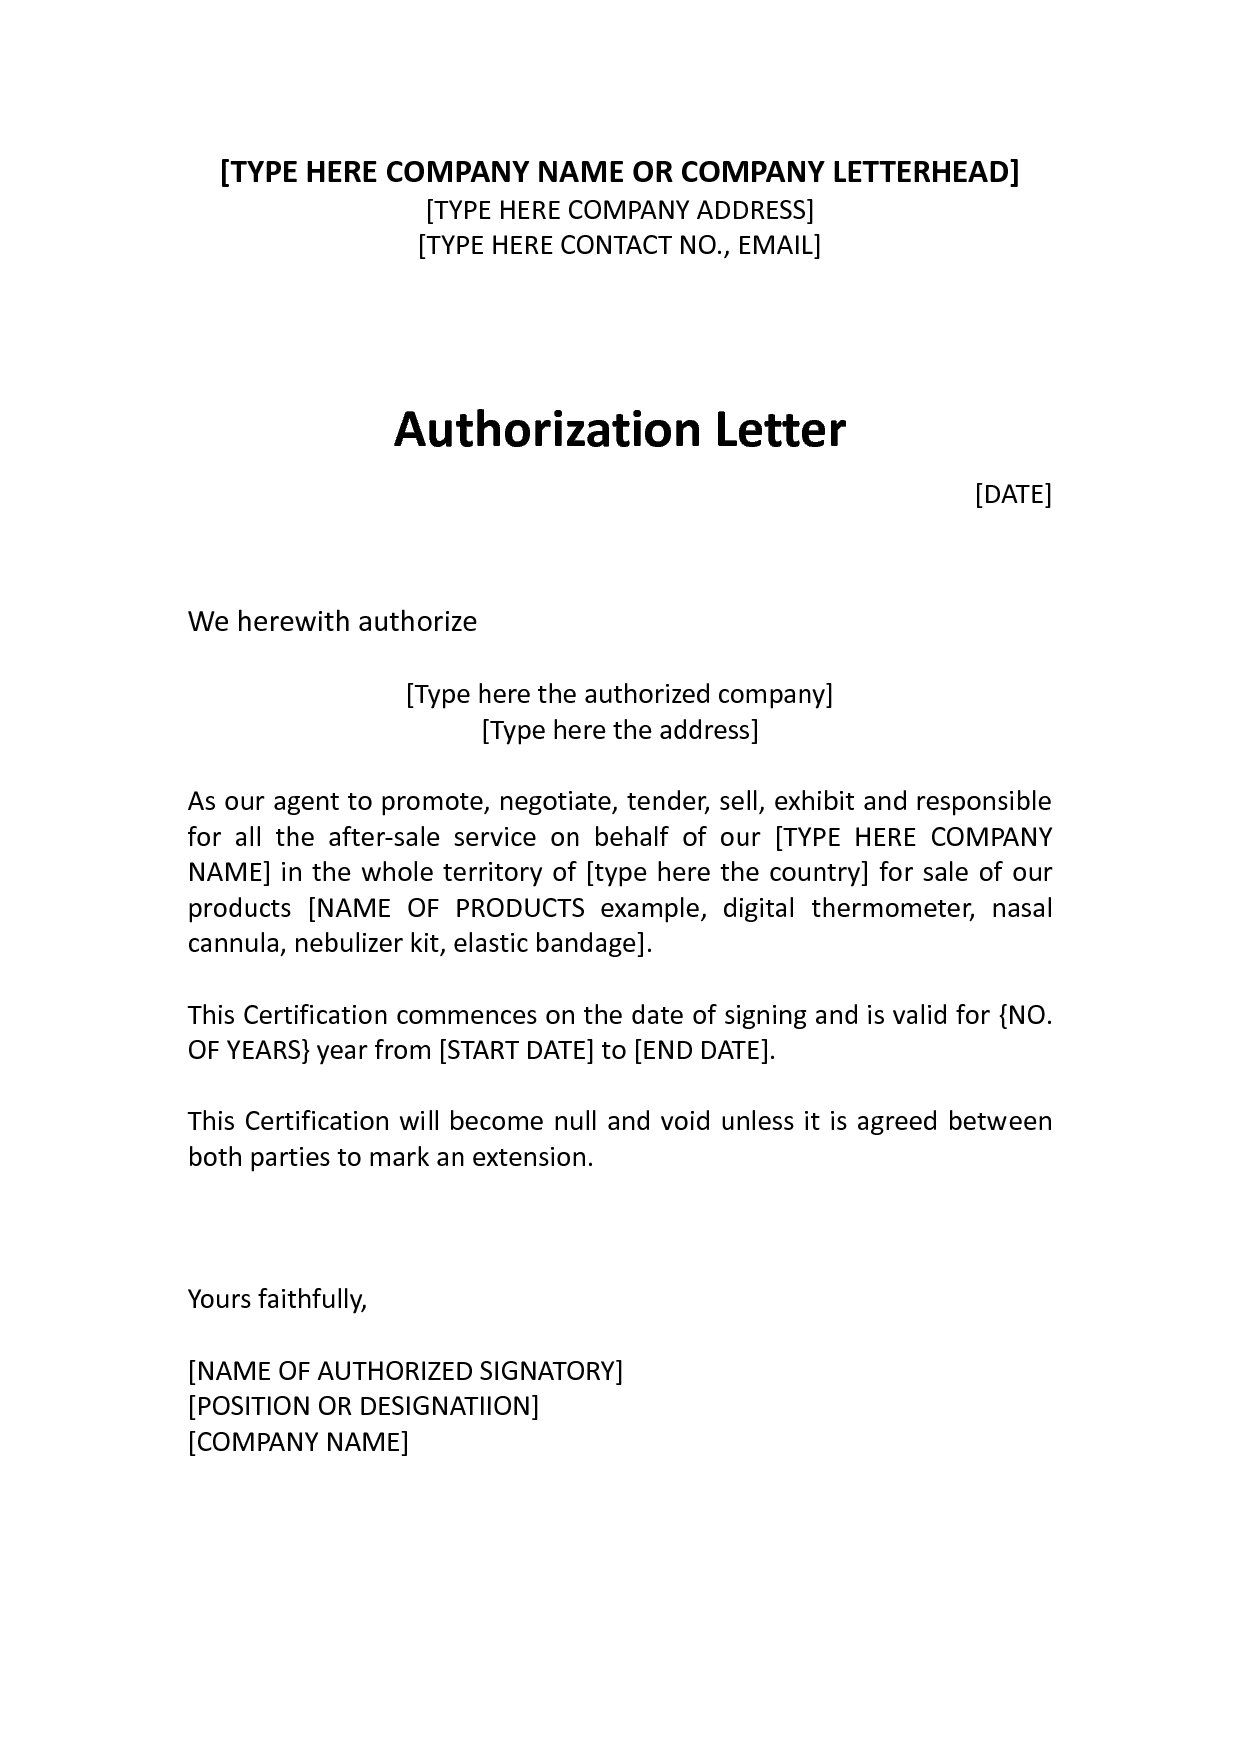 Authorization distributor letter sample distributor dealer authorization distributor letter sample distributor dealer authorization letter given by a company to its distributor or dealer thecheapjerseys Gallery